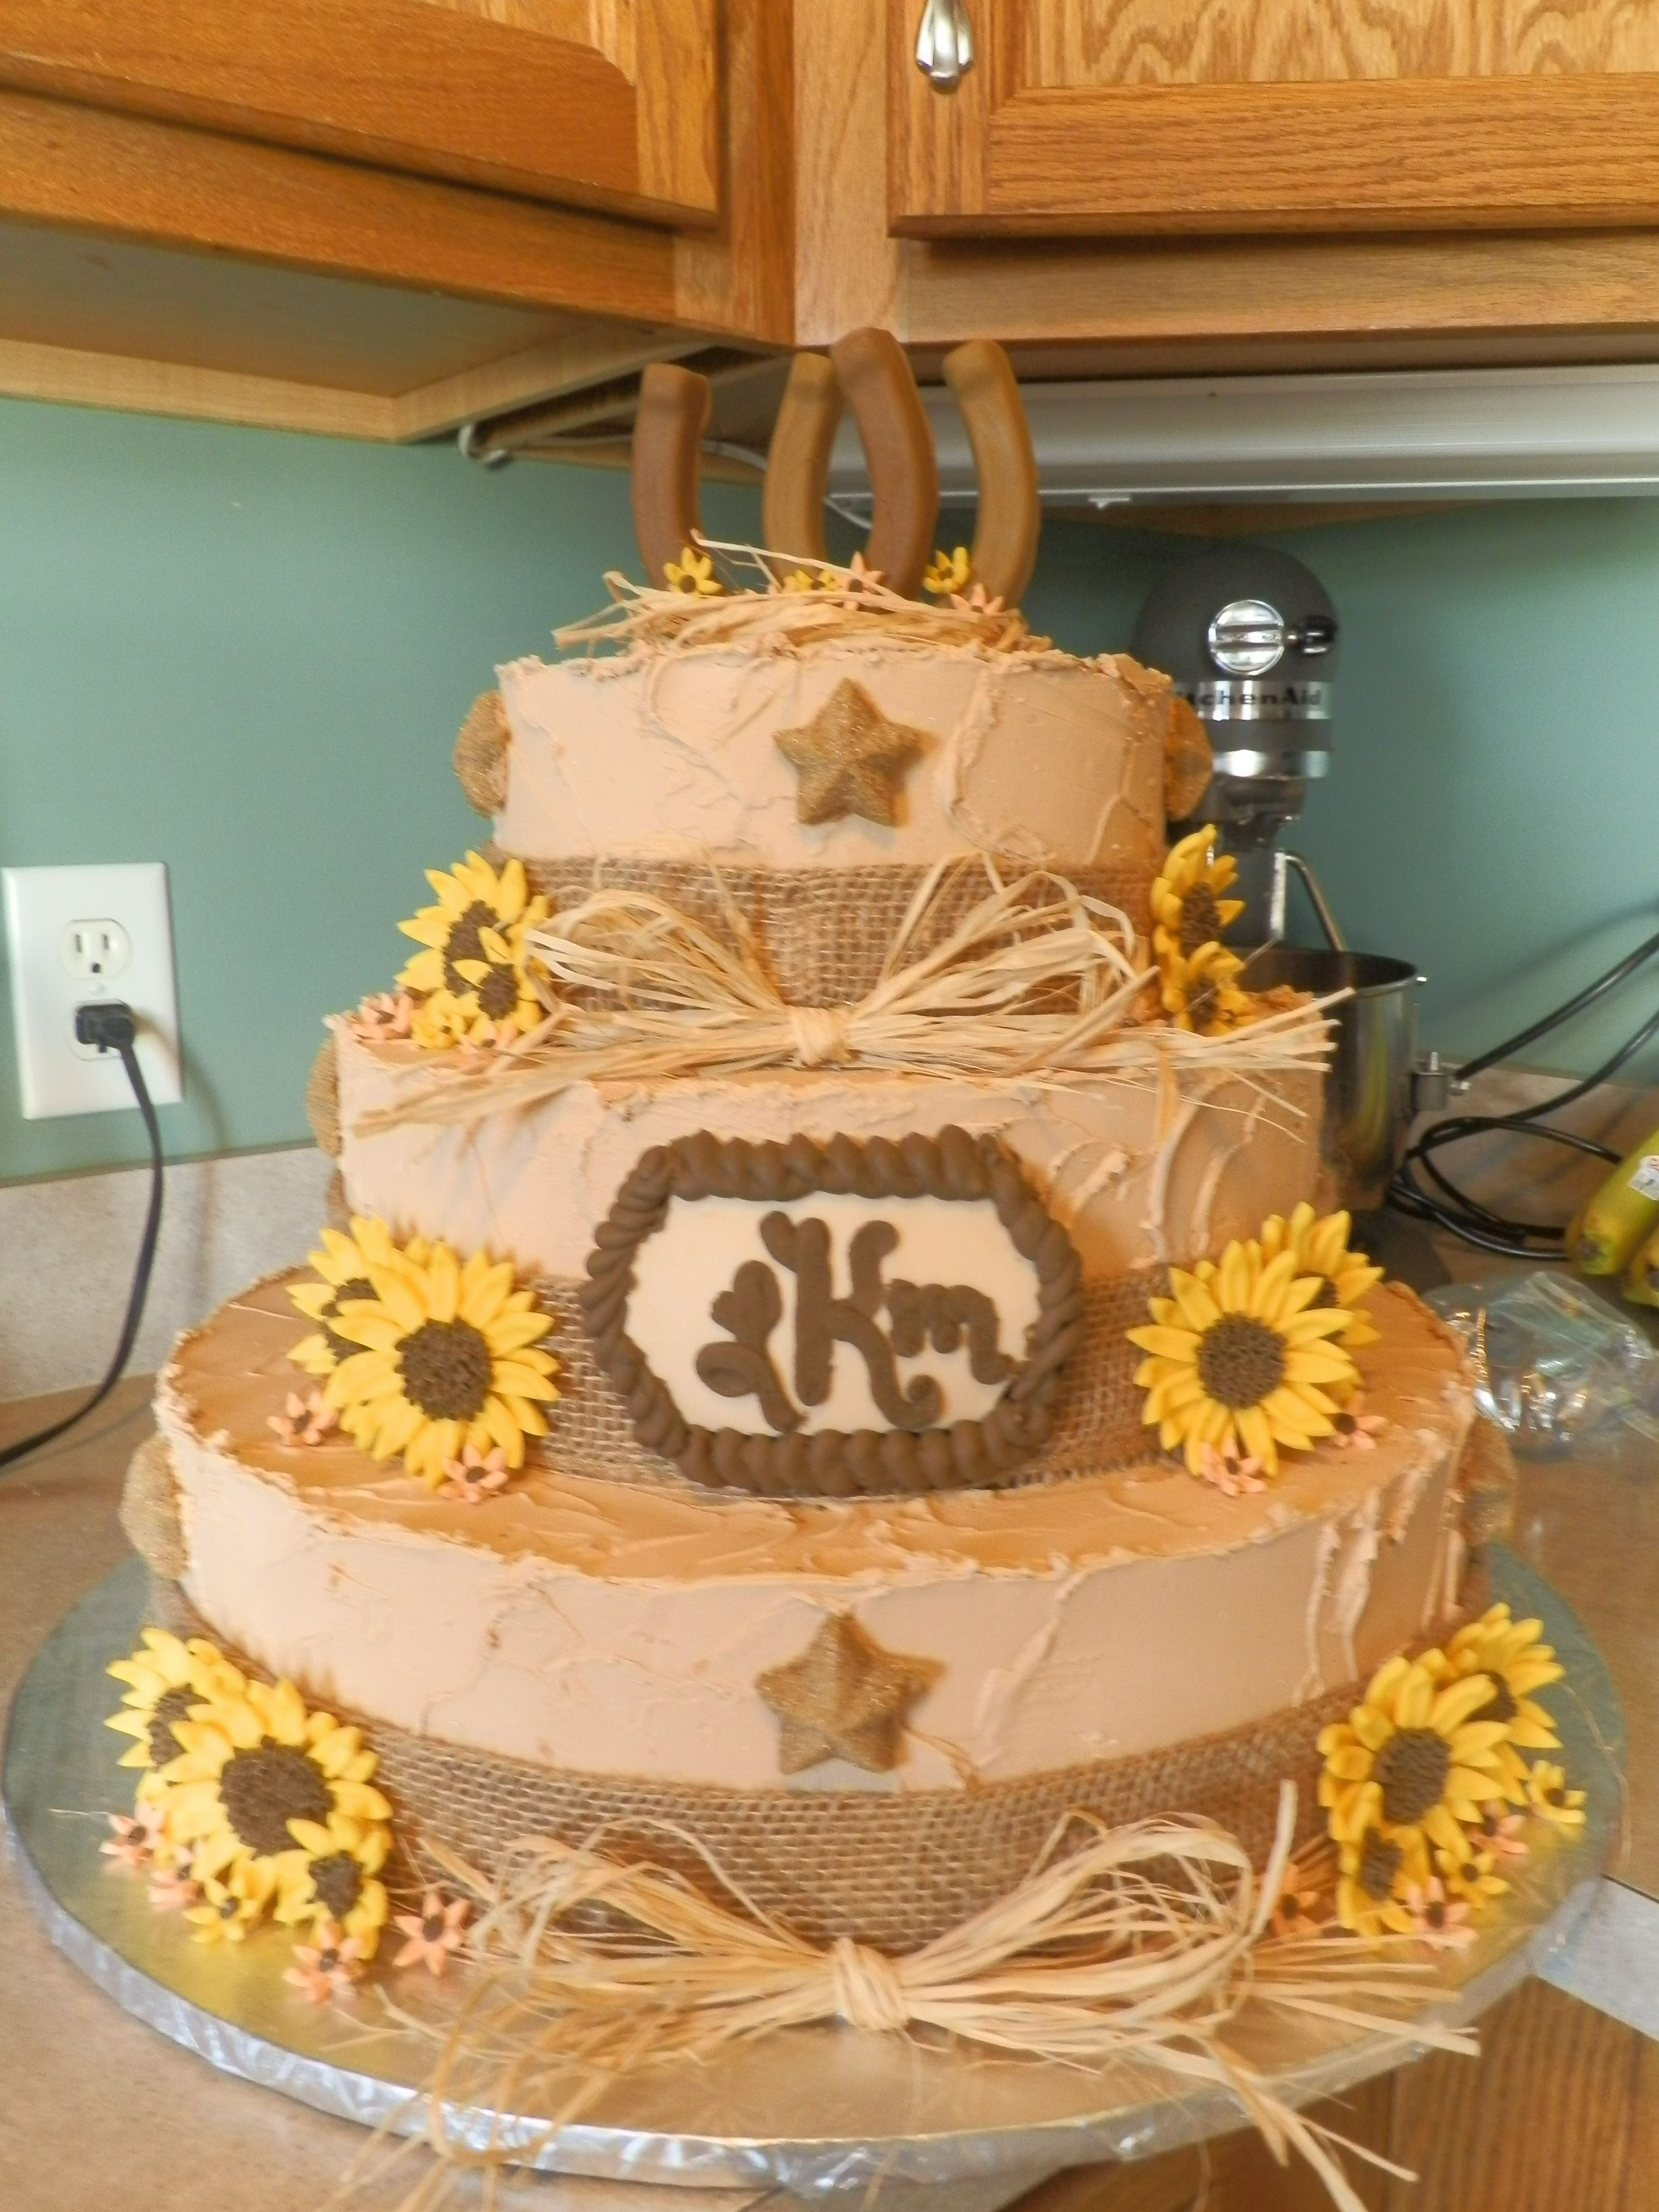 Decorating With Raffia Tiered Western Country Rustic Wedding Cake W Horseshoe Topper